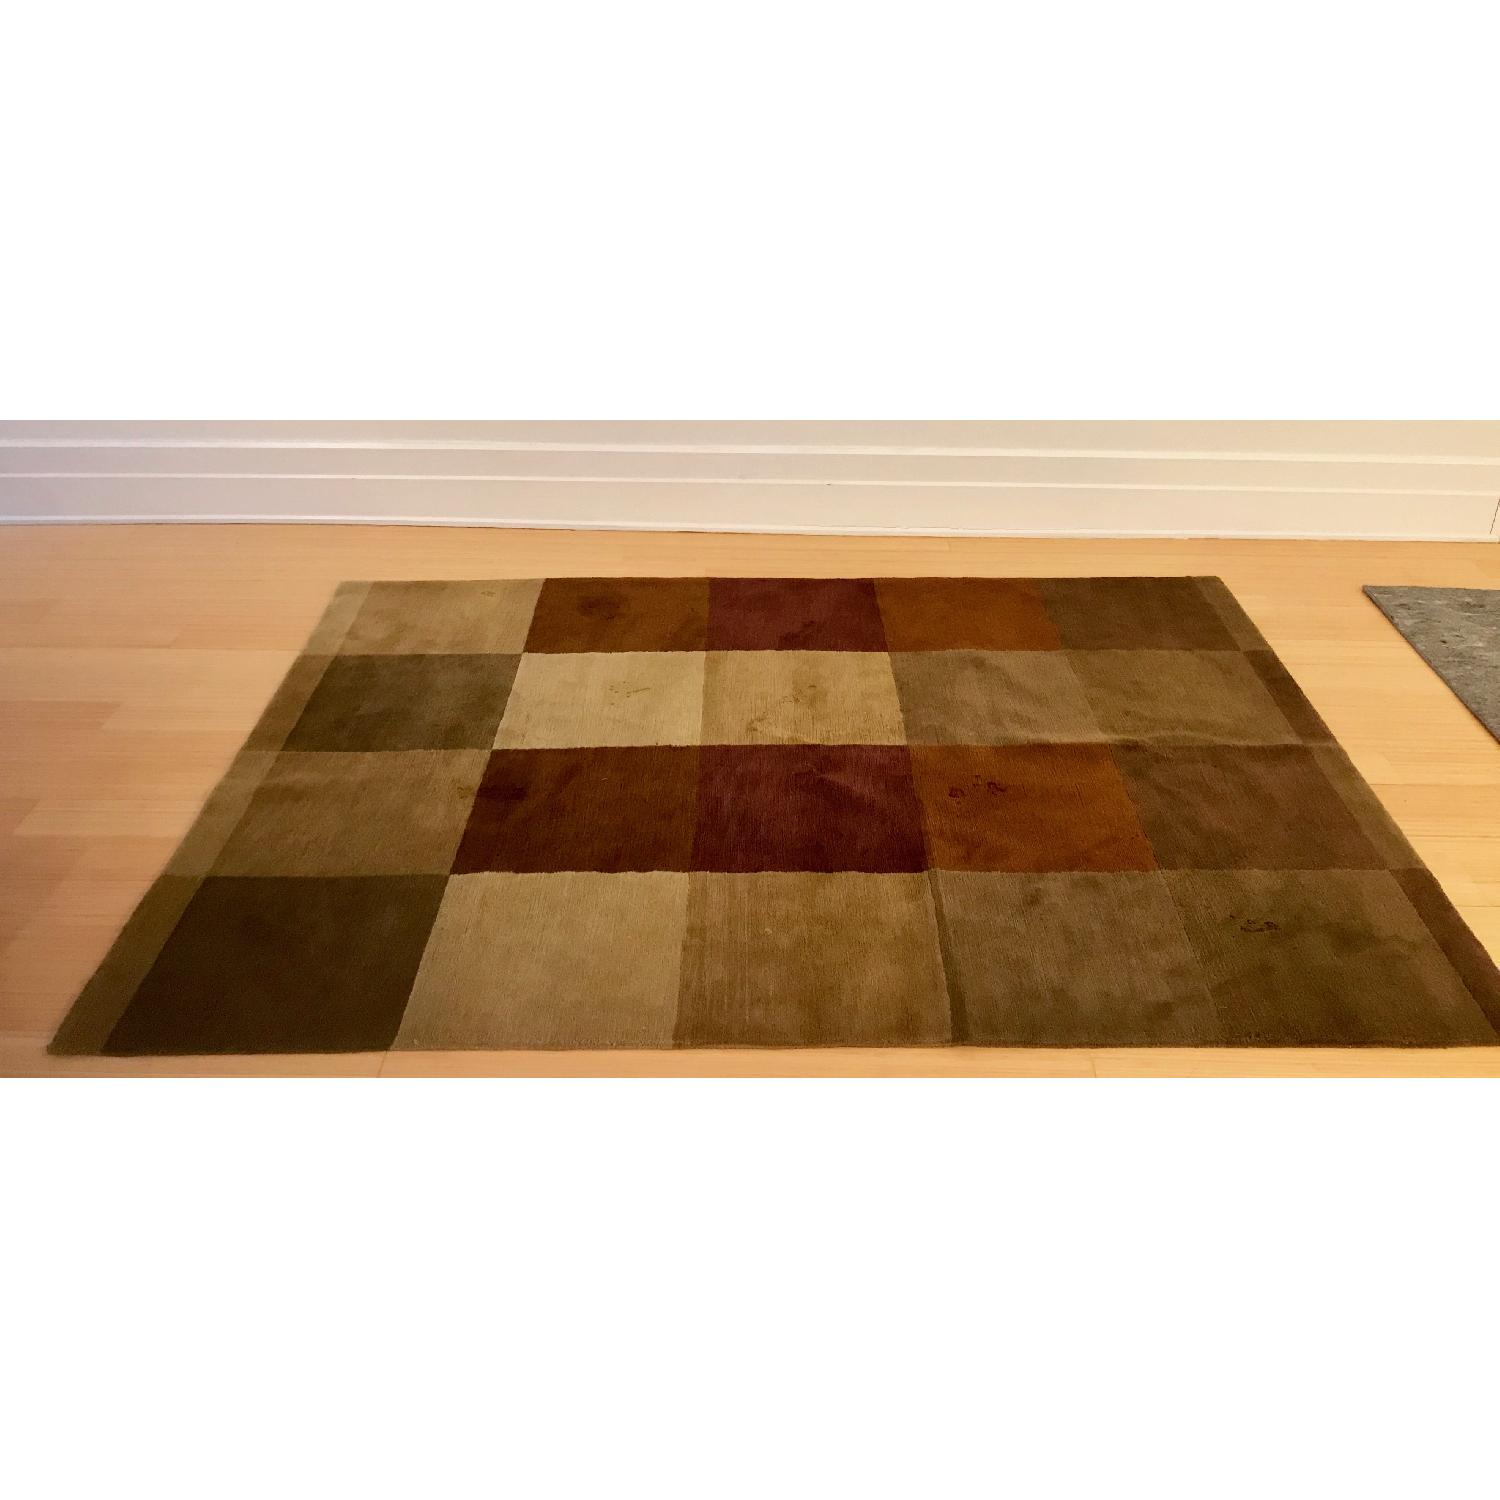 Hand Knotted Tibetan Wool Rug in Neutral Colors - image-1